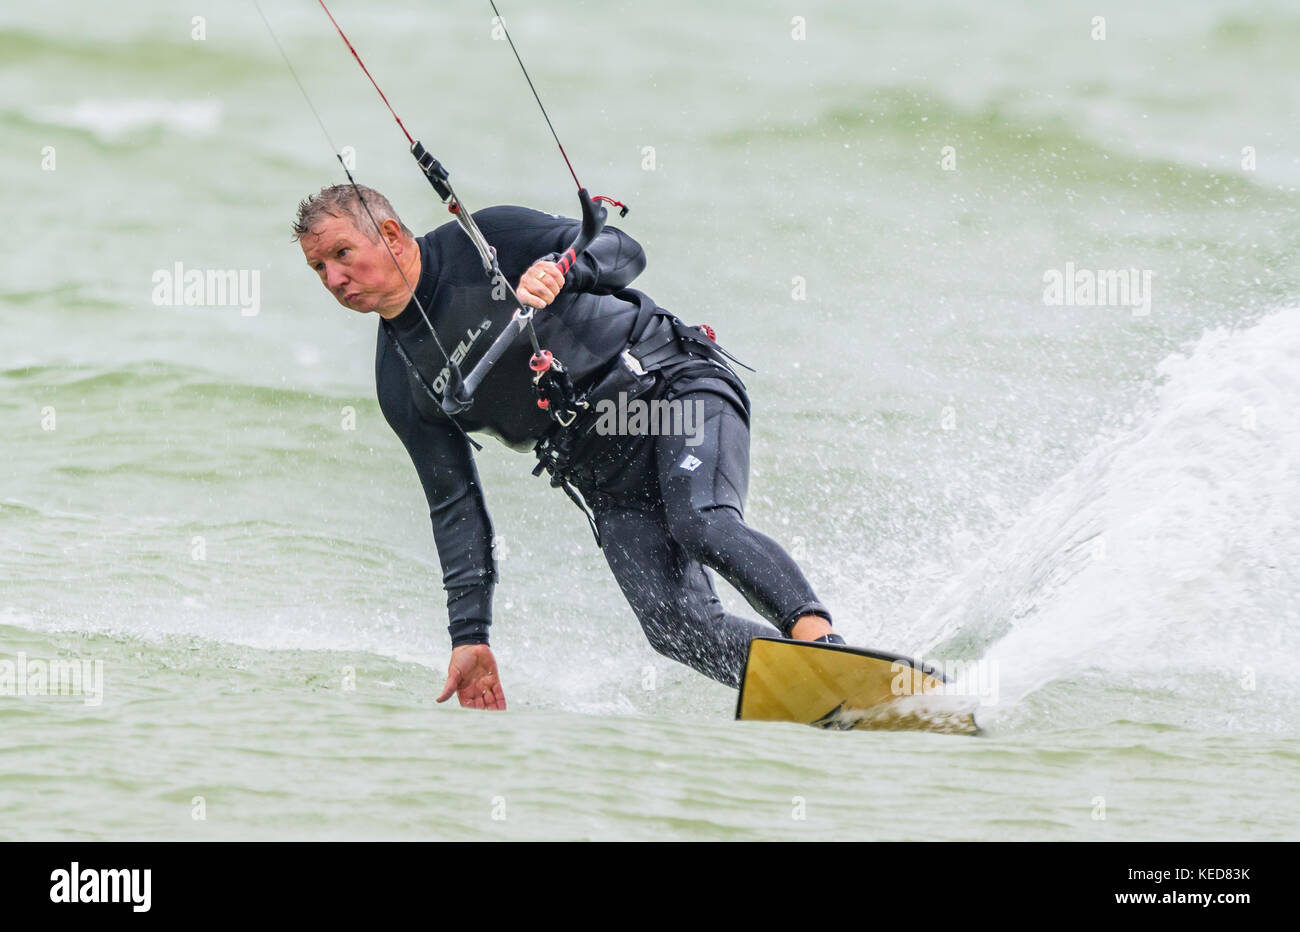 Man performing a turn while kitesurfing at sea on a windy day. Male kitesurfer on the ocean. - Stock Image